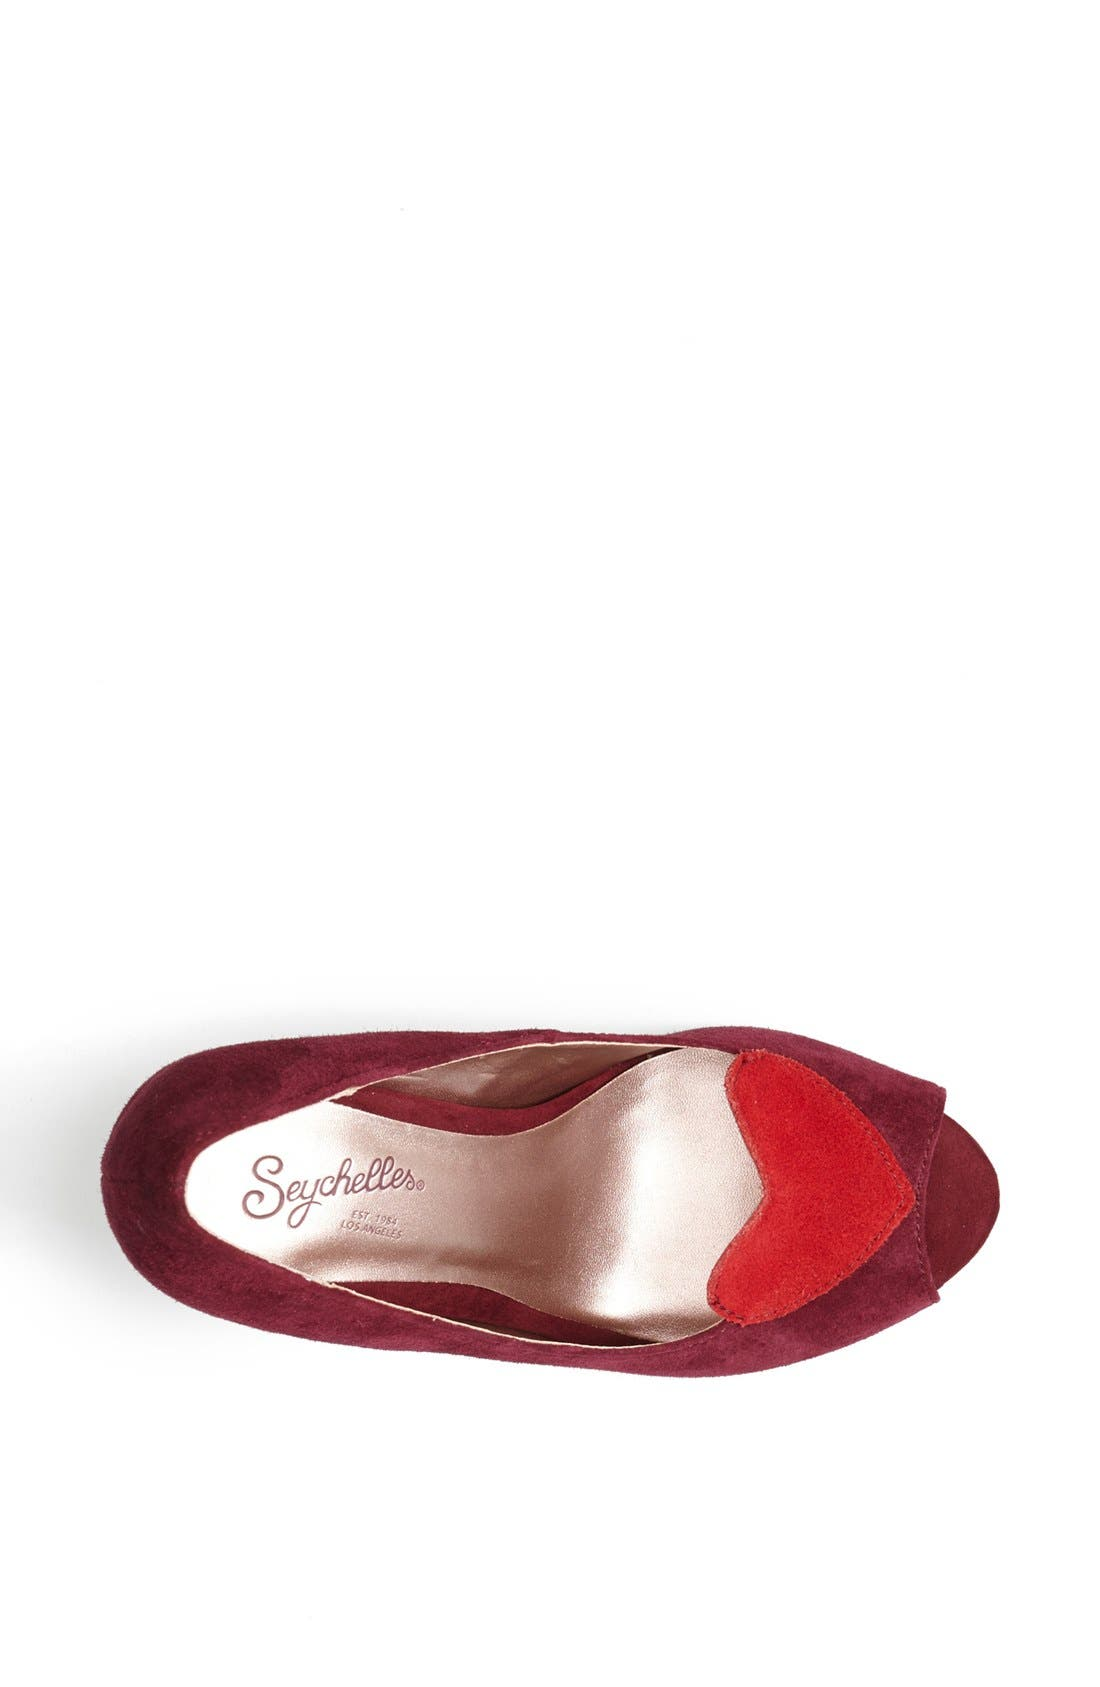 Alternate Image 3  - Seychelles 'Ready for Anything' Heart Appliqué Pump